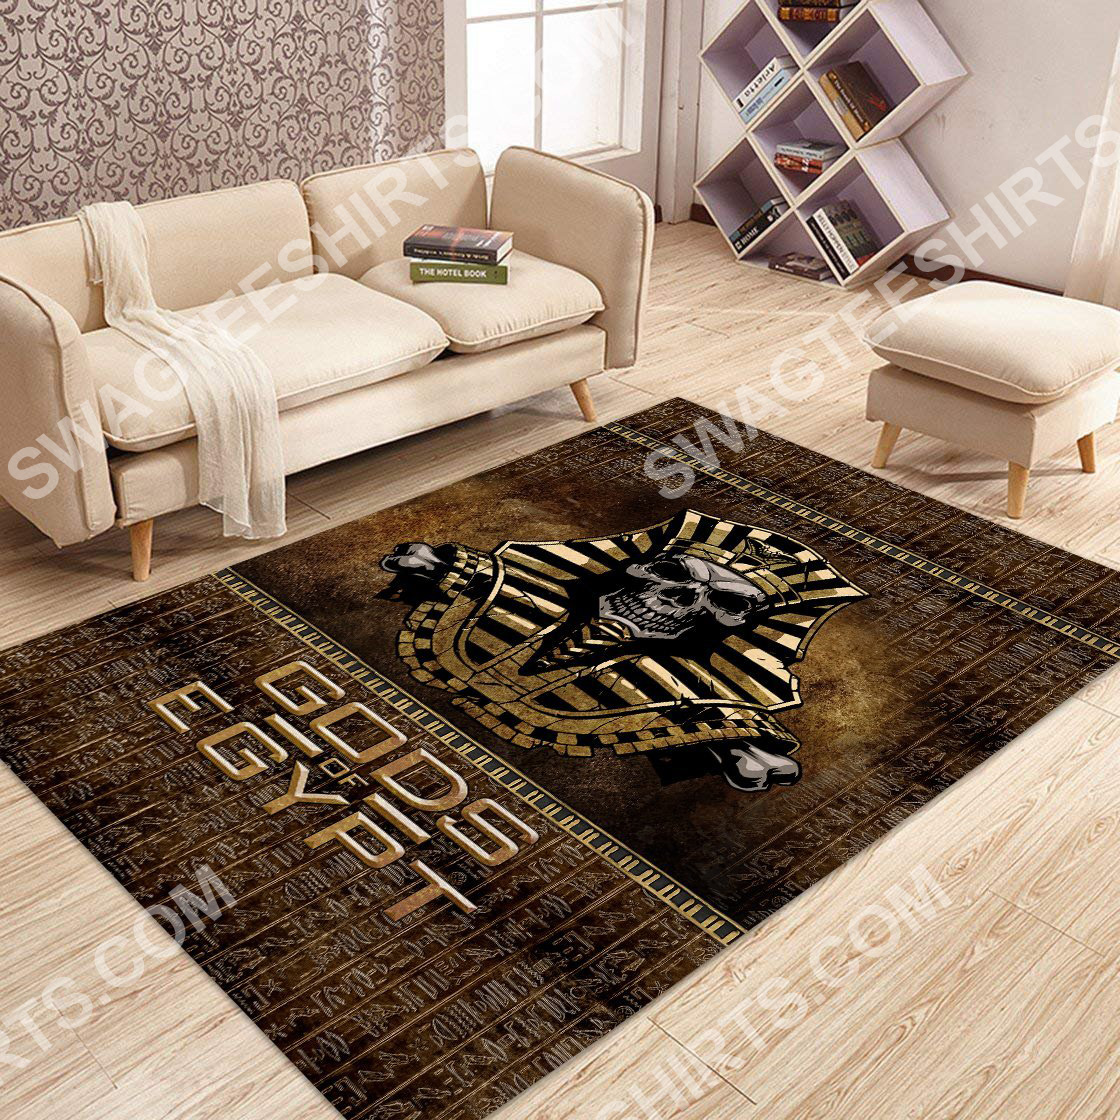 the skull Gods of egypt culture all over printed rug 3(1)